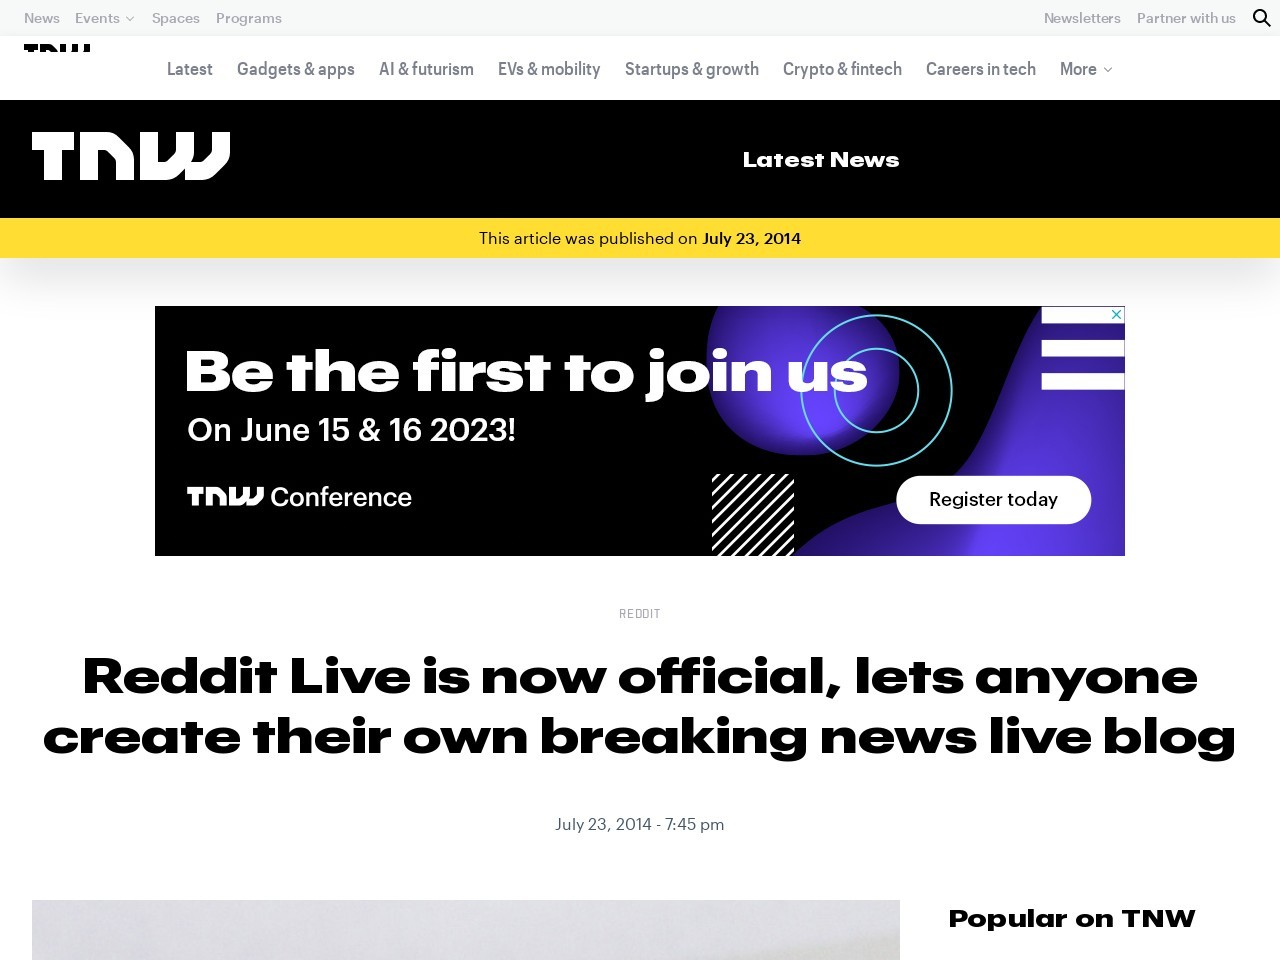 Reddit Live is now official, lets anyone create their own breaking news live blog